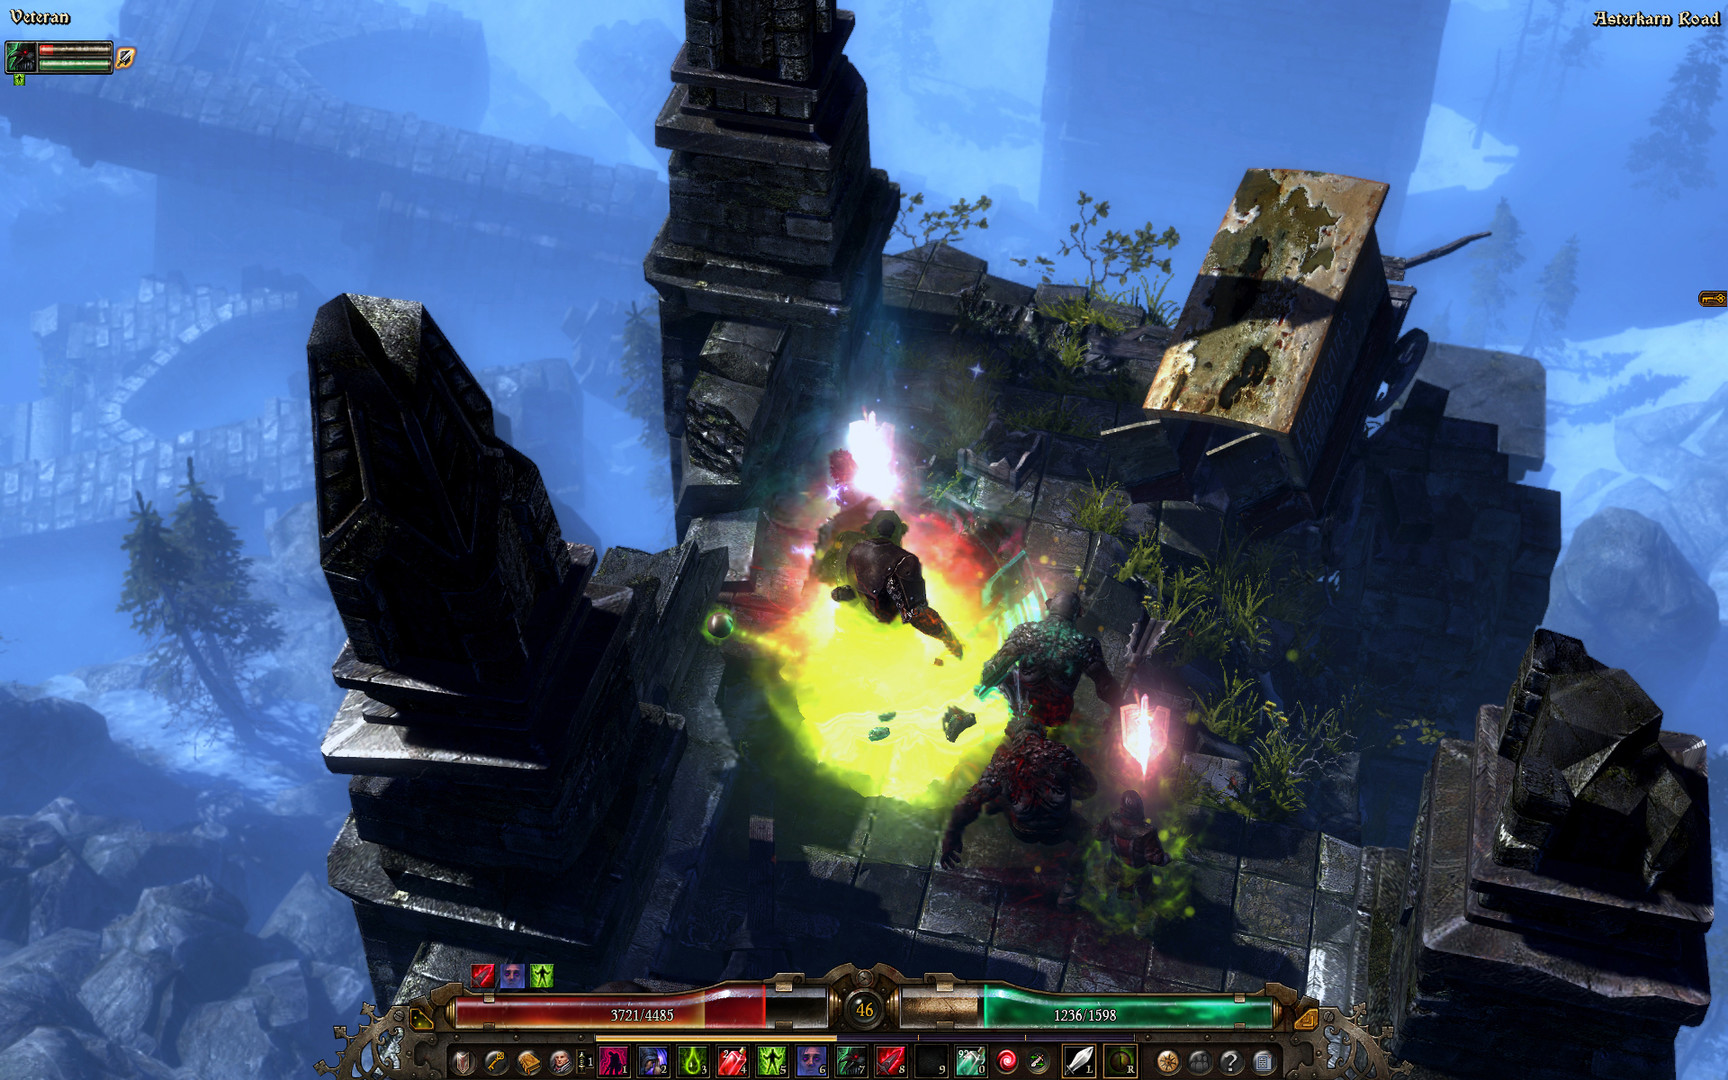 Grim Dawn - CODEX - Tek Link indir